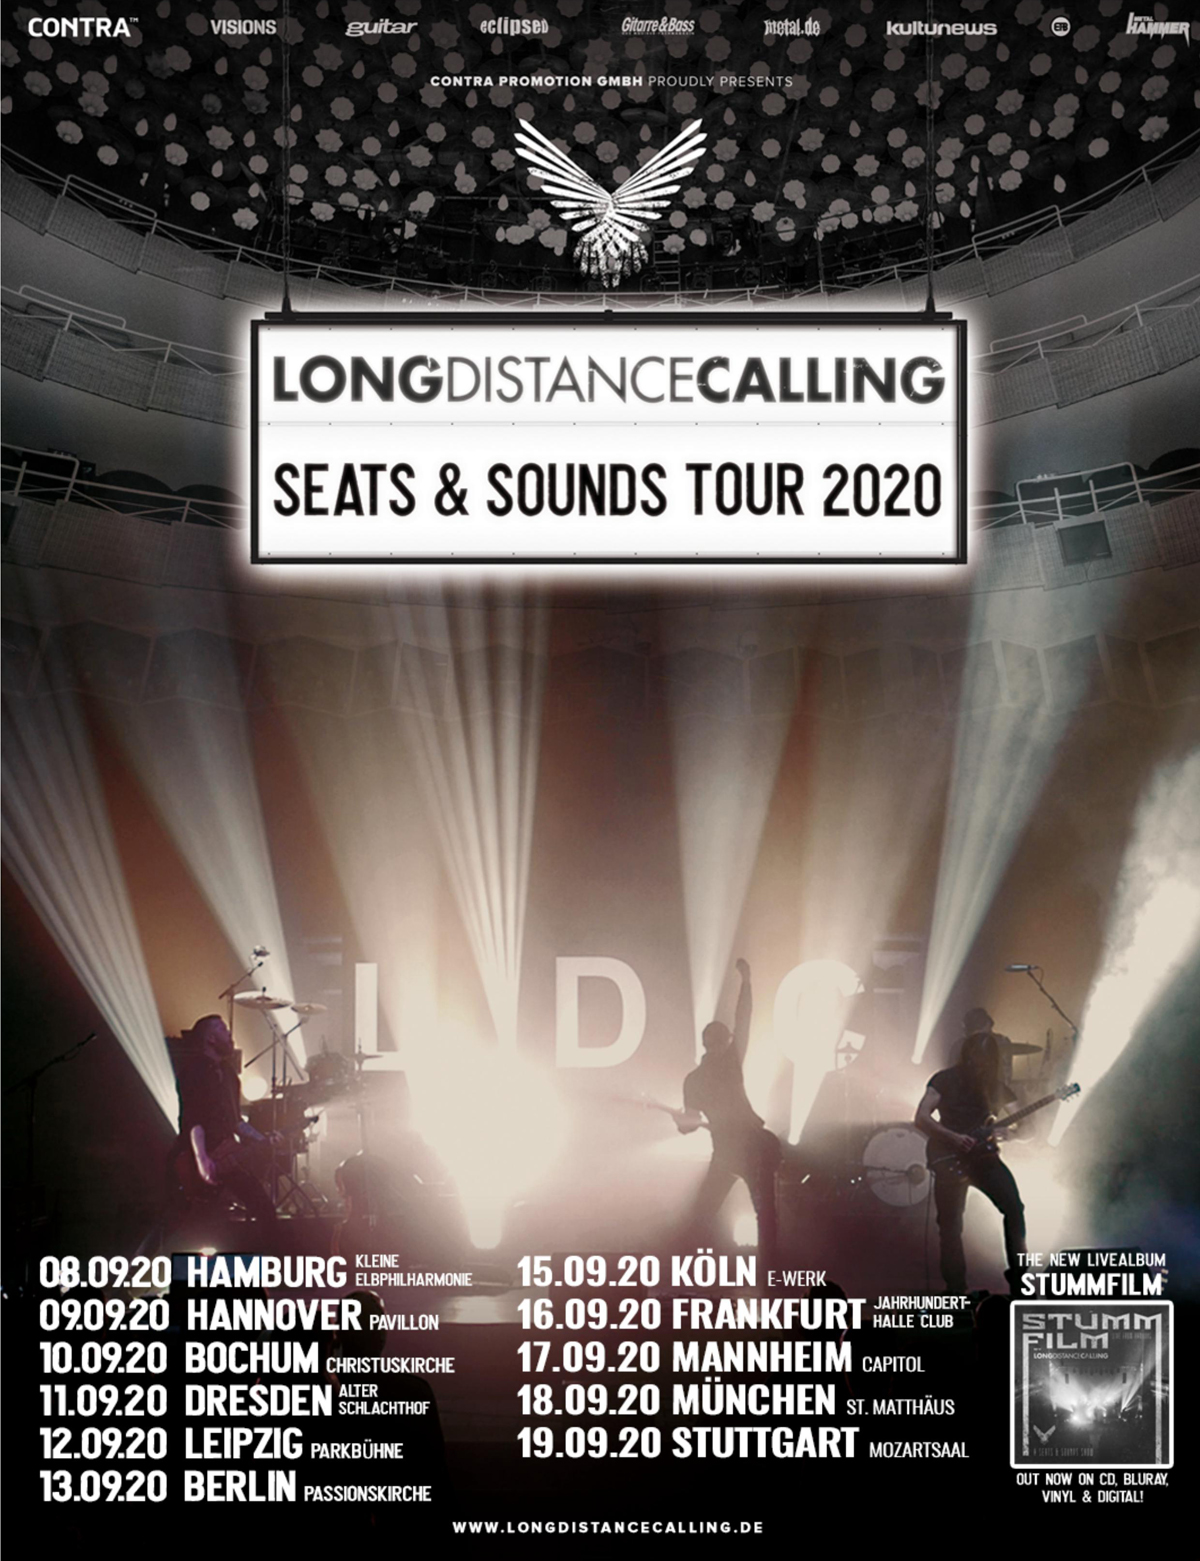 Long Distance Calling - Seats & Sounds Tour 2020